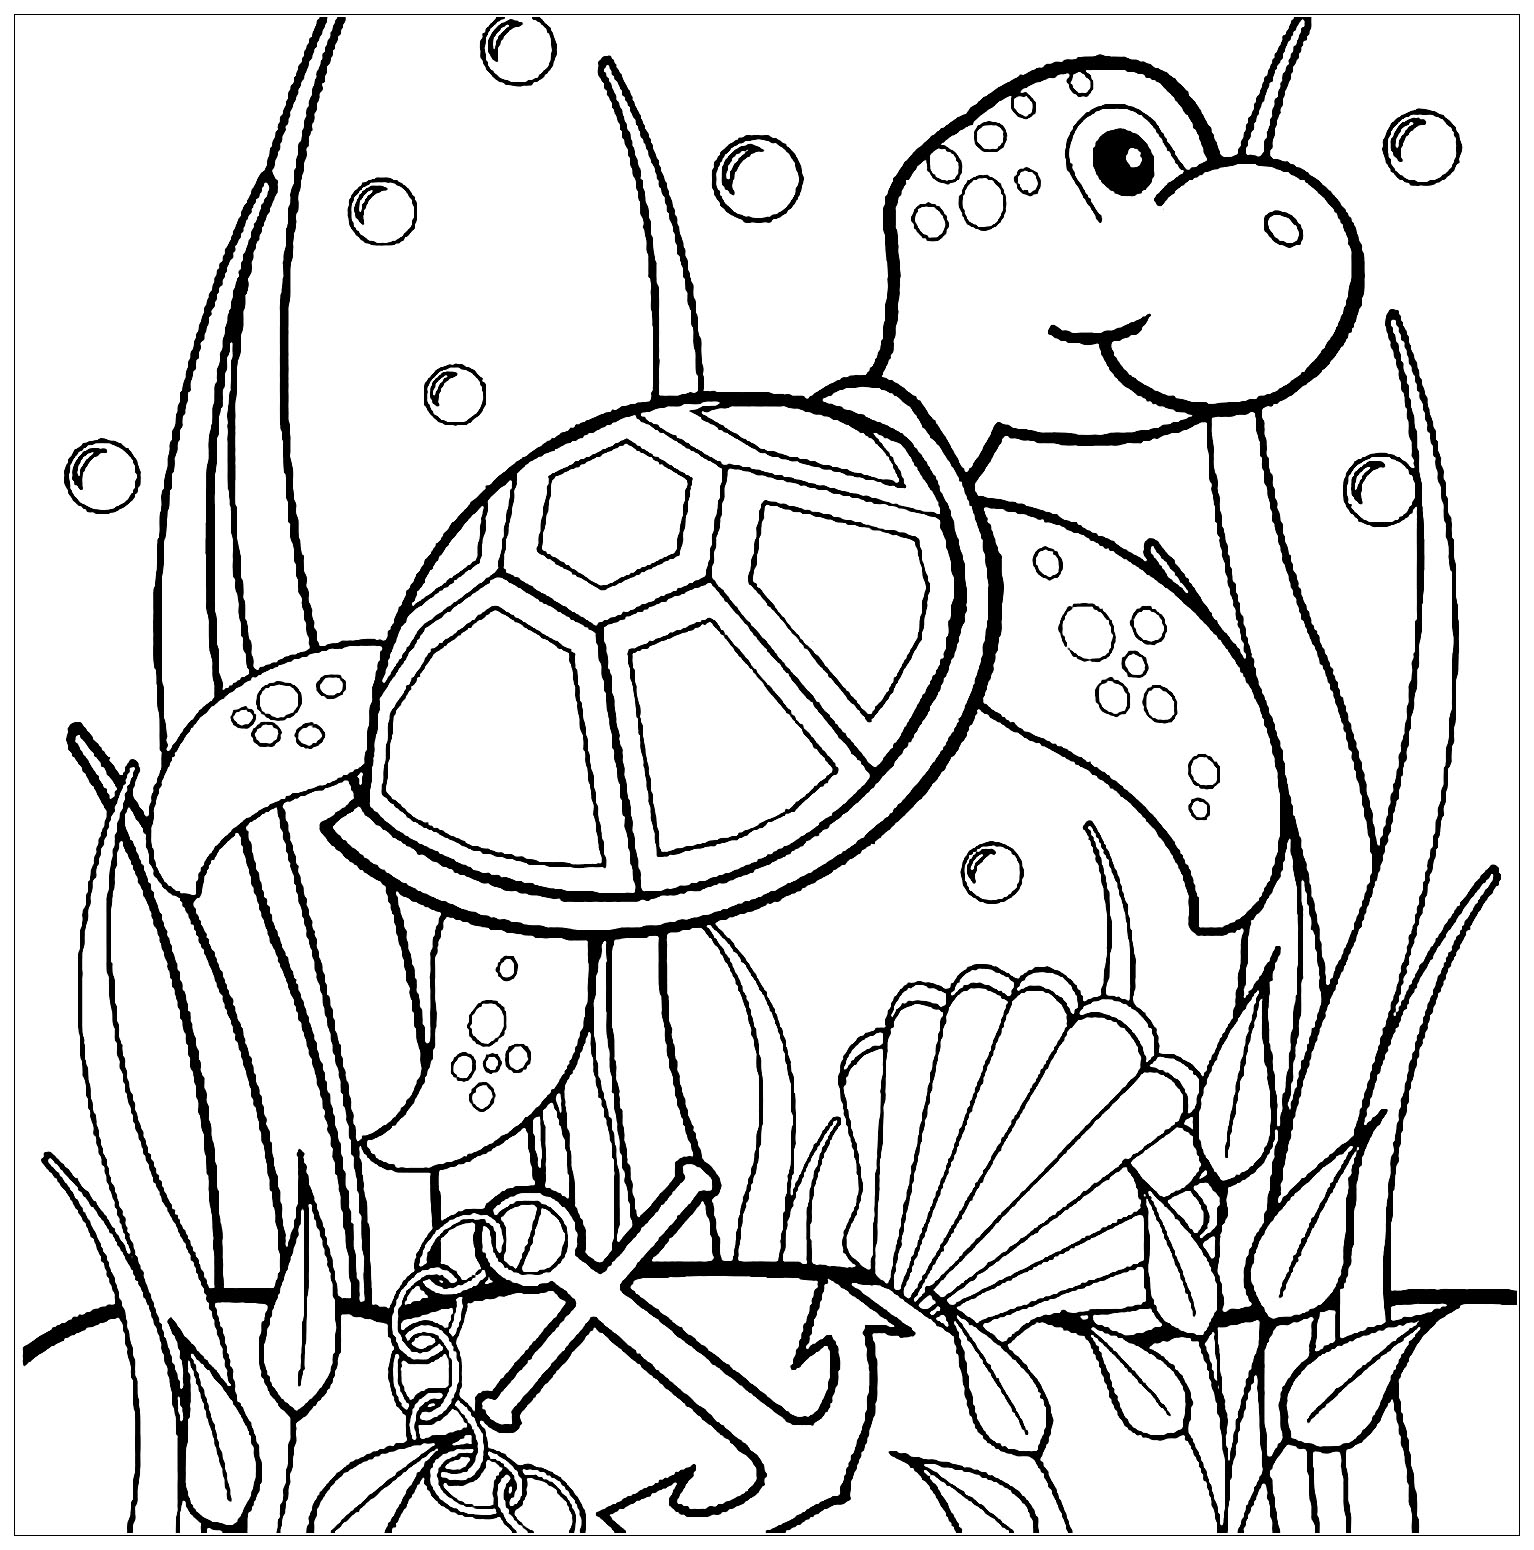 coloring pages turtle free easy to print turtle coloring pages tulamama pages turtle coloring